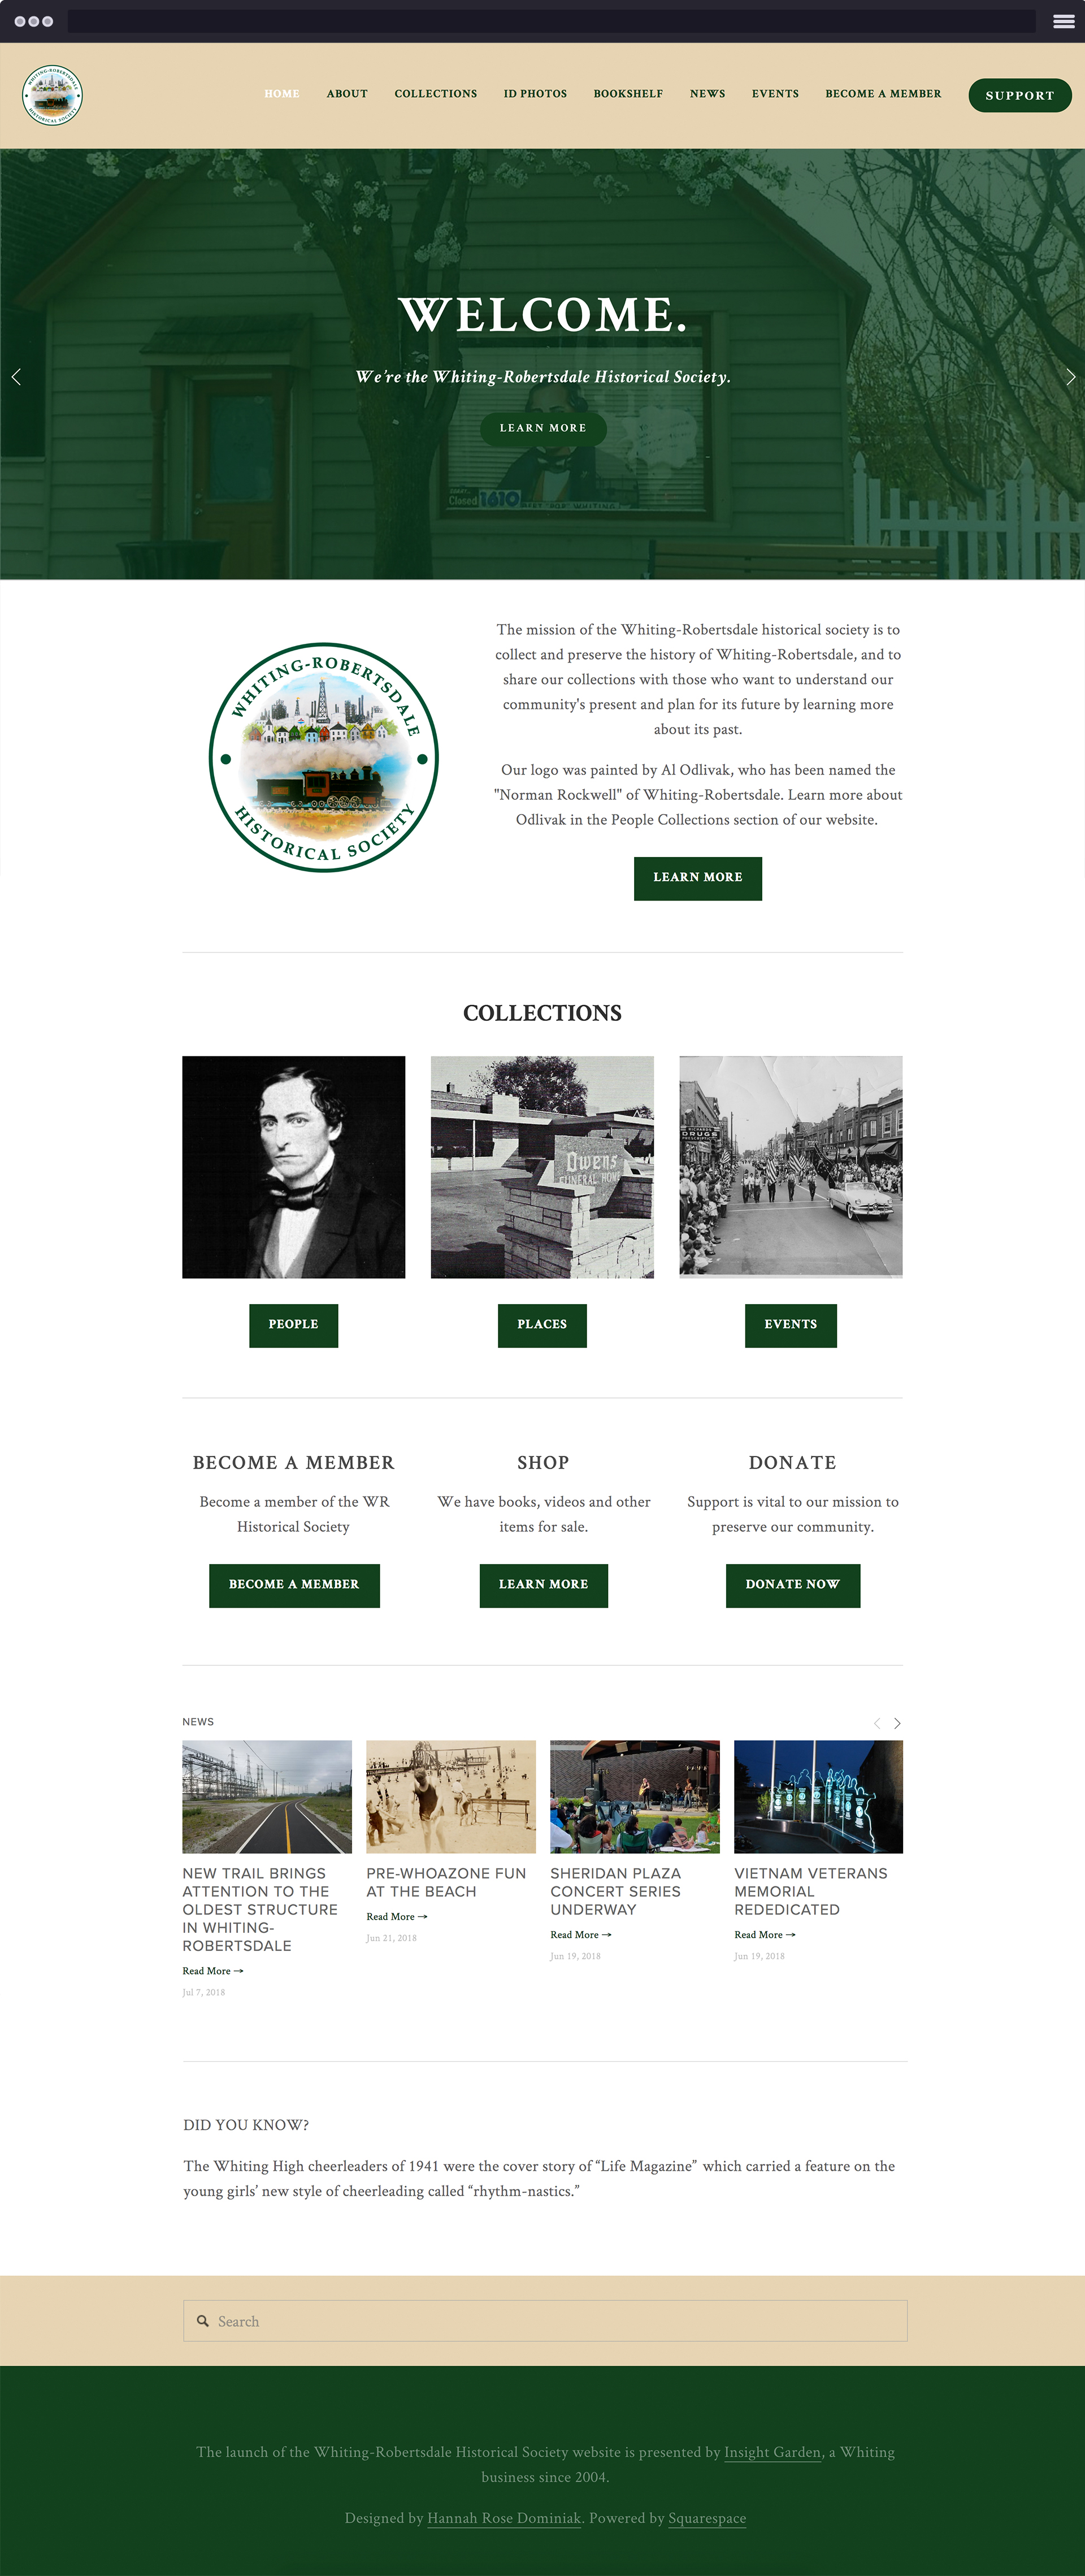 Whiting-Robertsdale Historical Society, a non-profit organization dedicated to preserving the history of the Whiting-Robertsdale community.